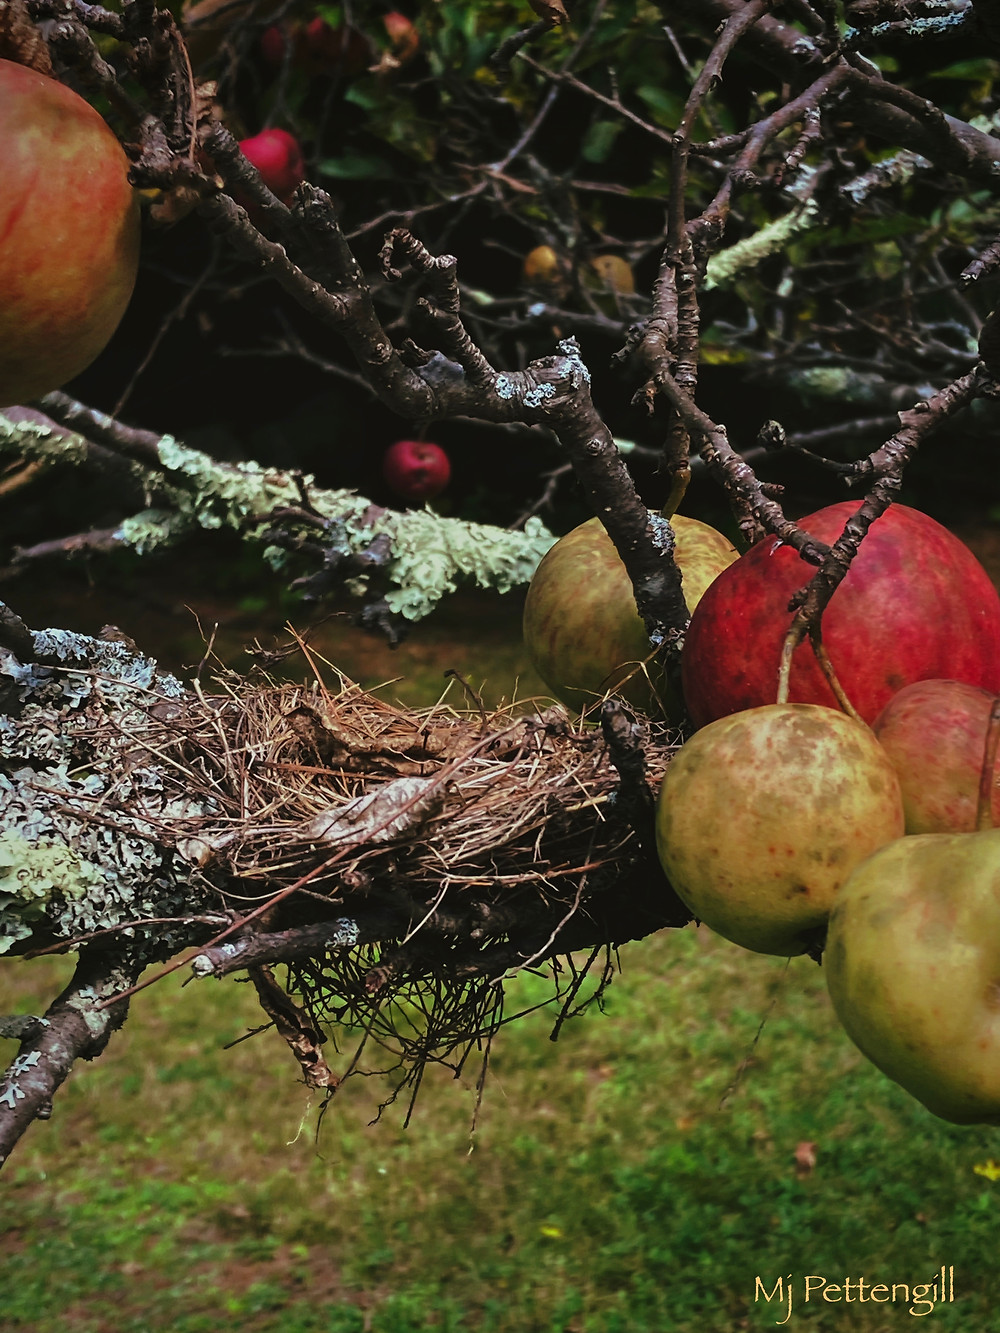 Wildly Imperfect Apples, Mj Pettengill